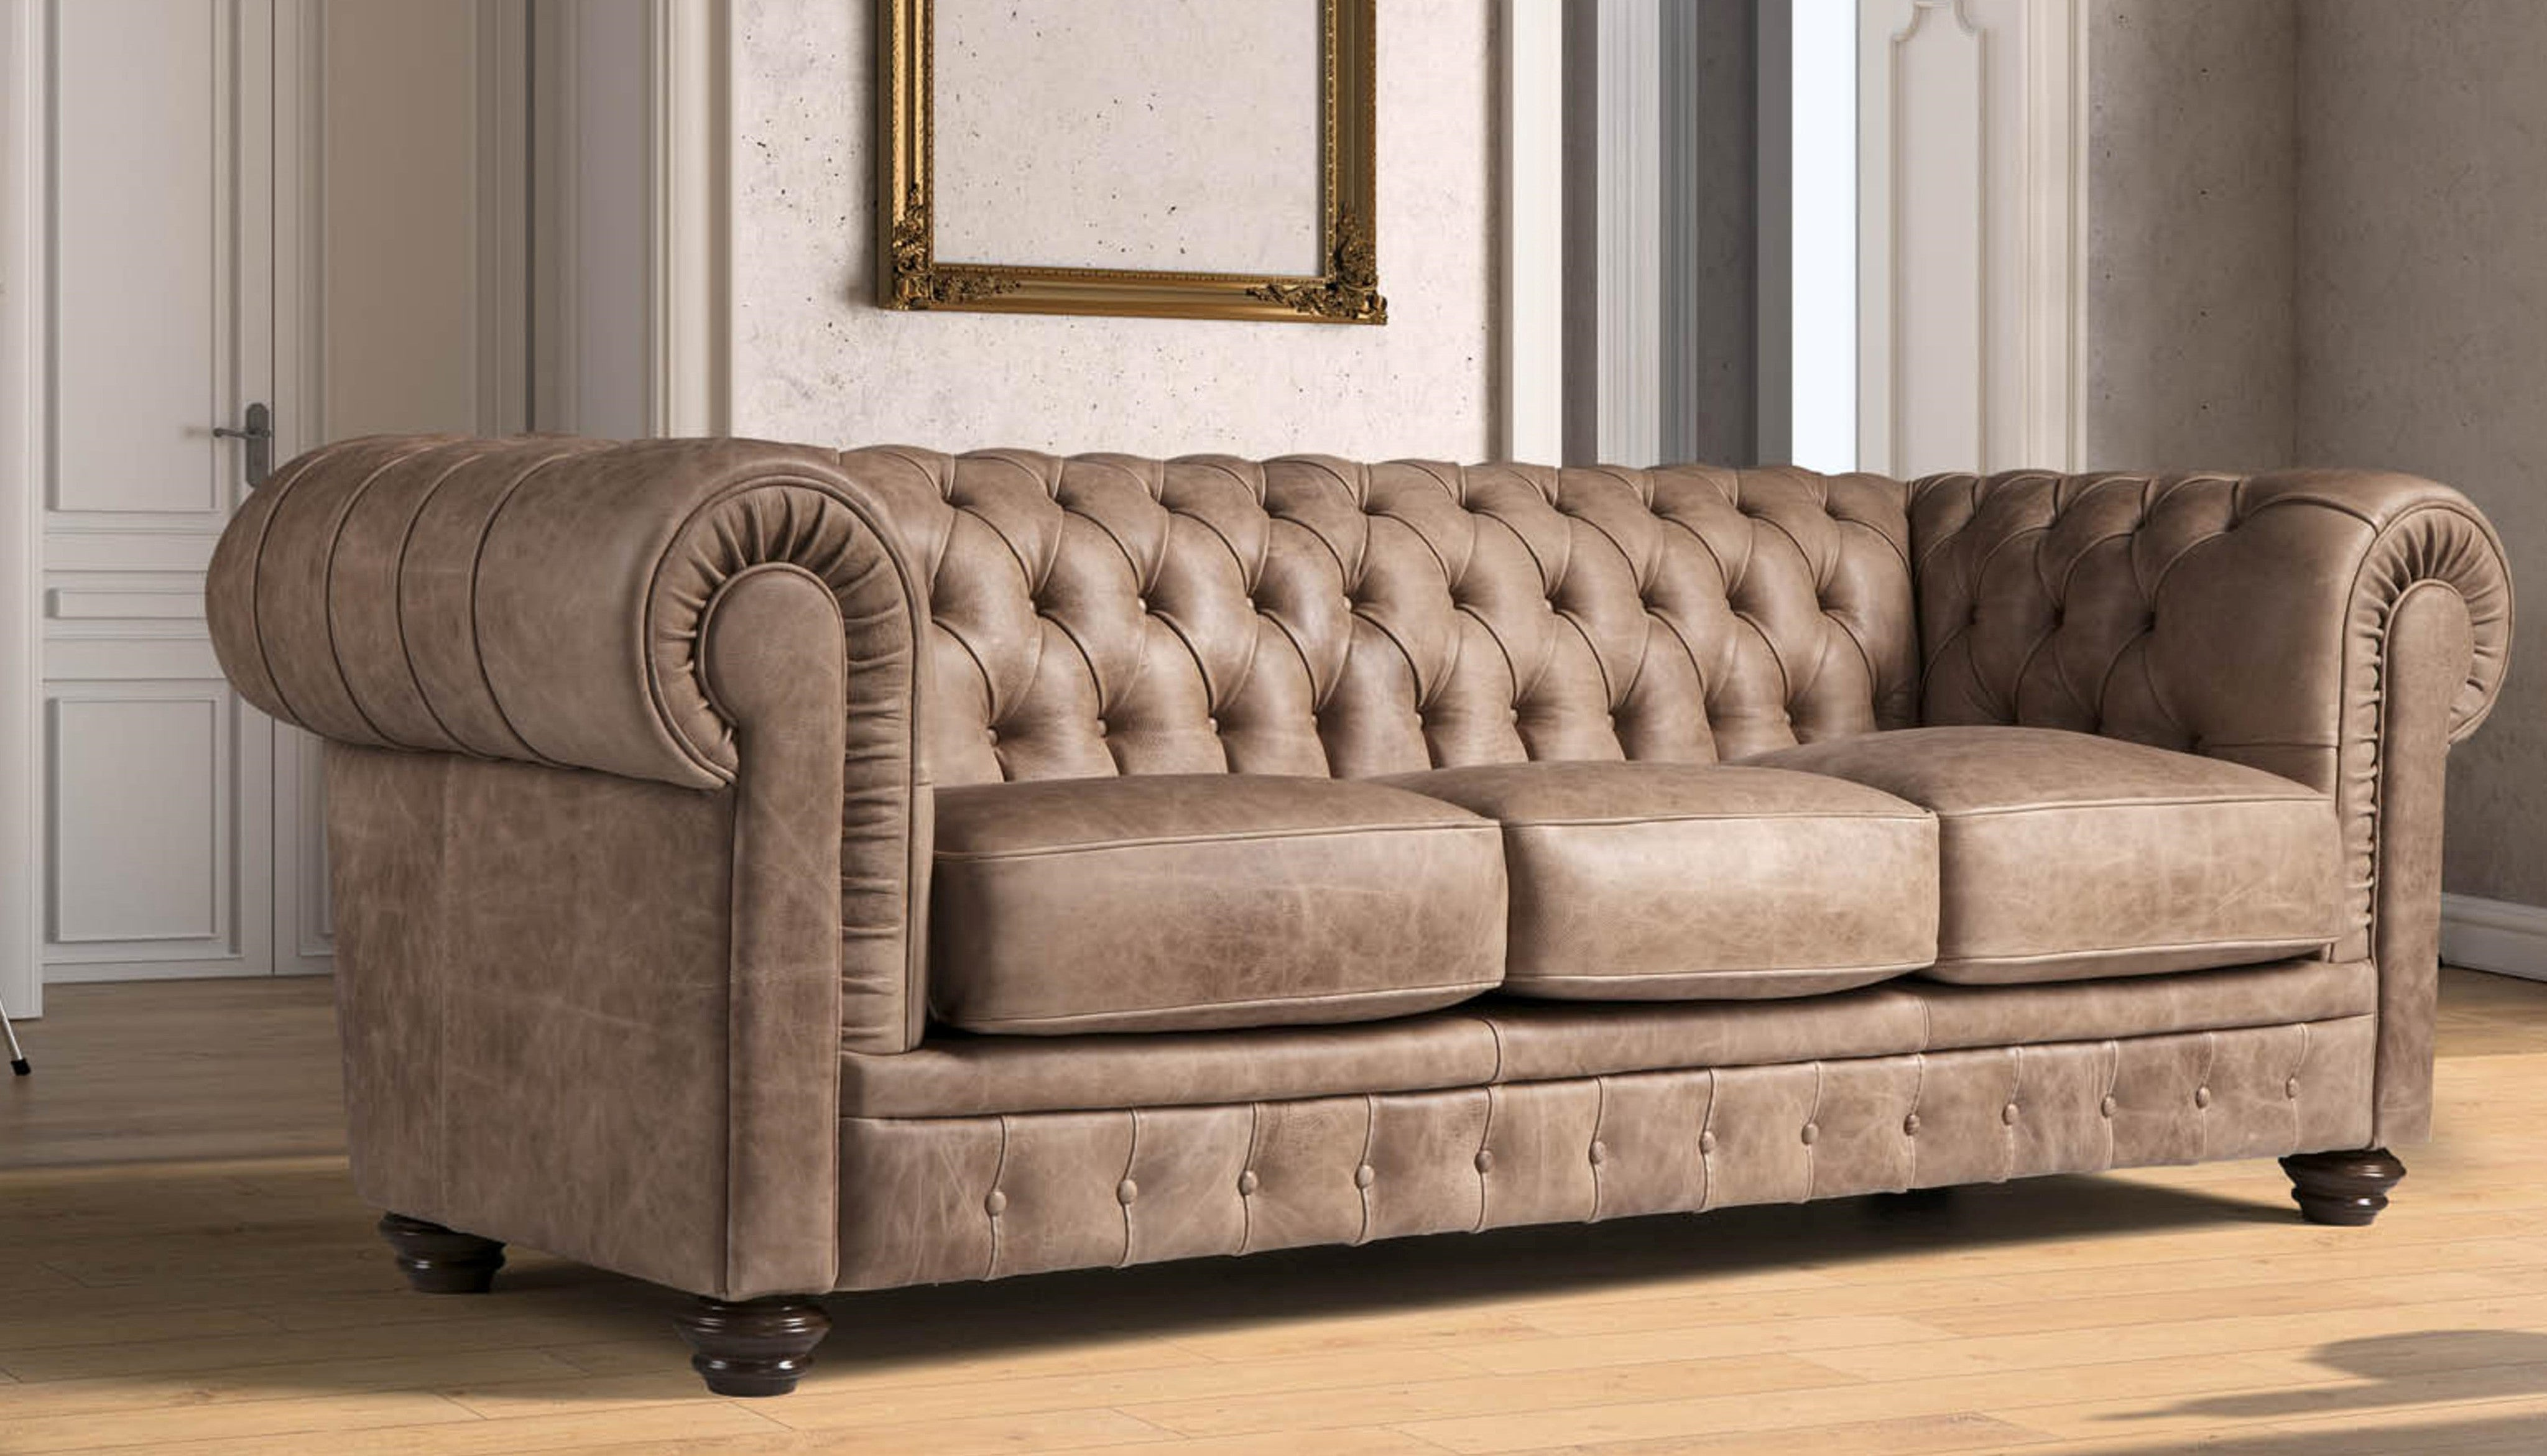 luxury leather furniture in castleford kc sofas rh kcsofas co uk luxury leather sofas au luxury leather sofas london